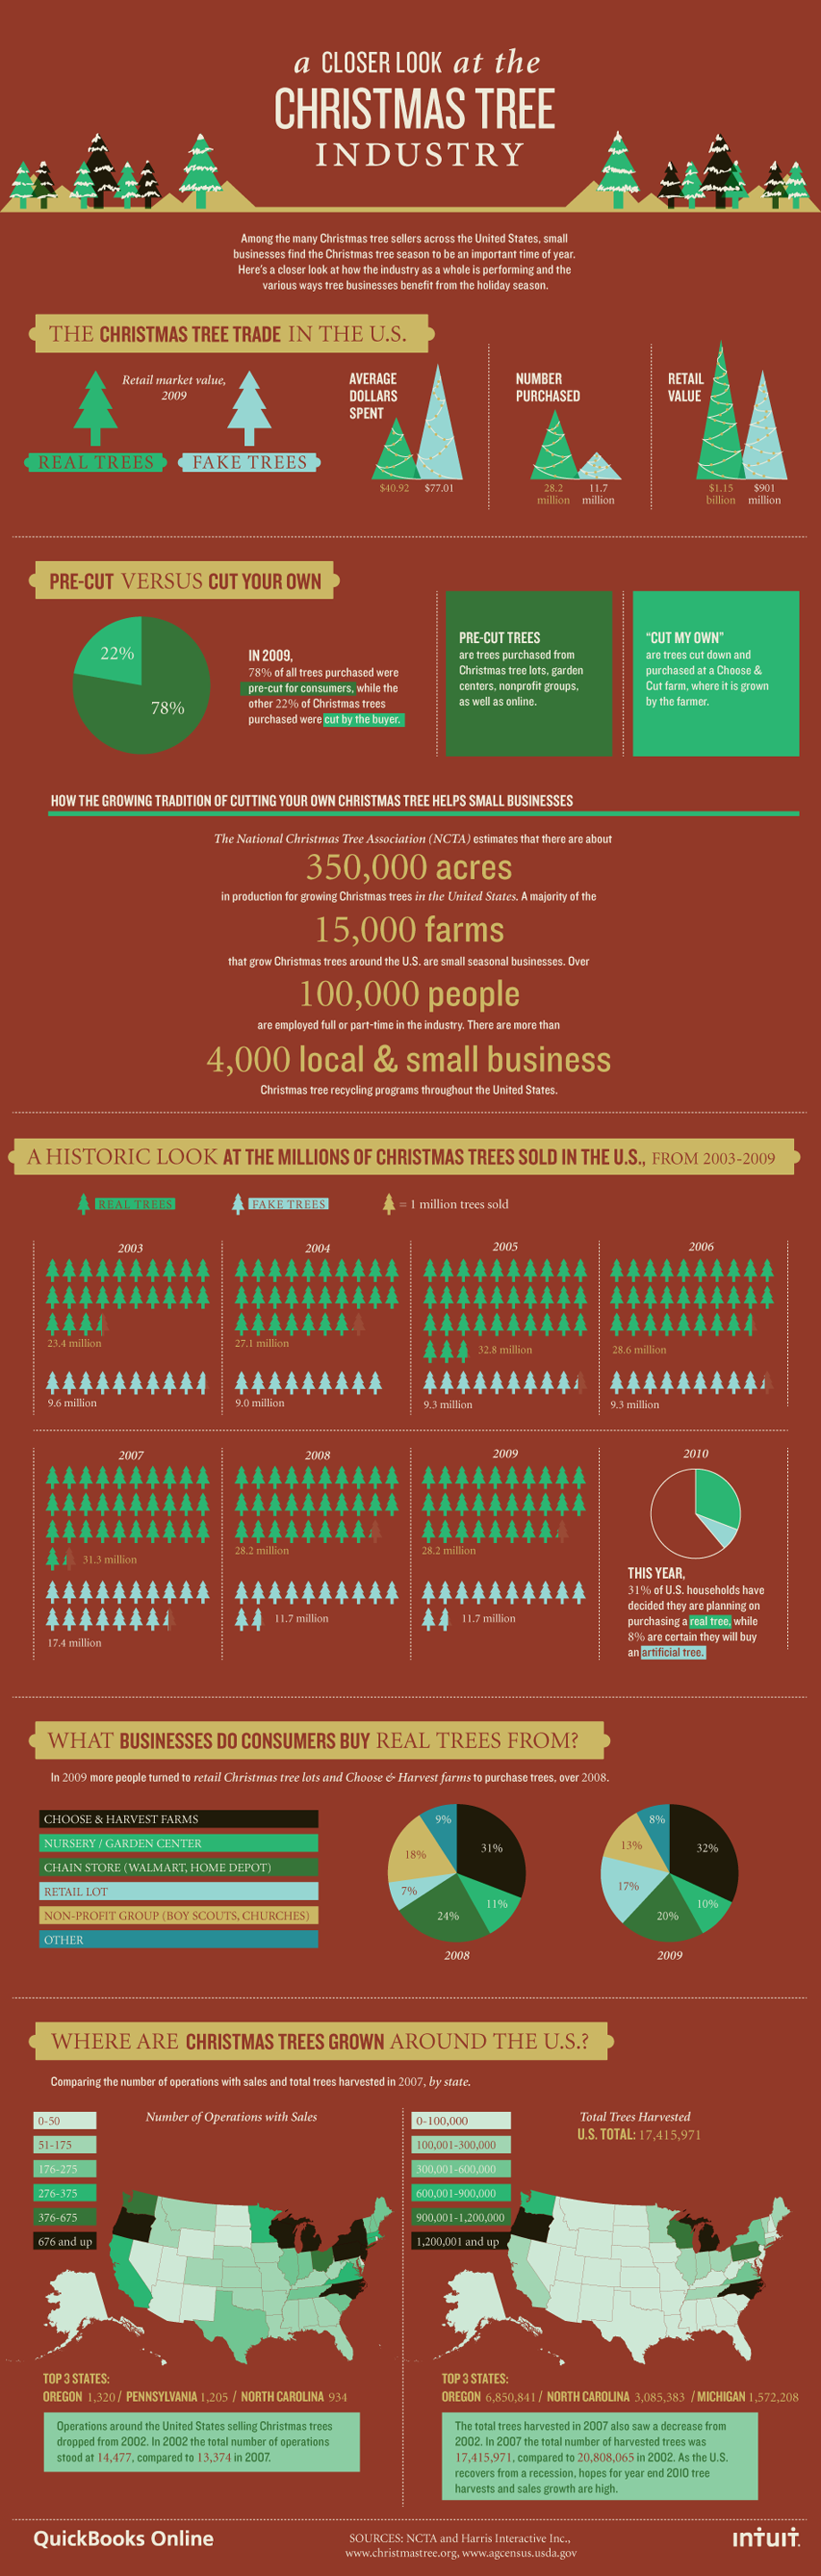 Infographic: A Closer Look at the Christmas Tree Industry